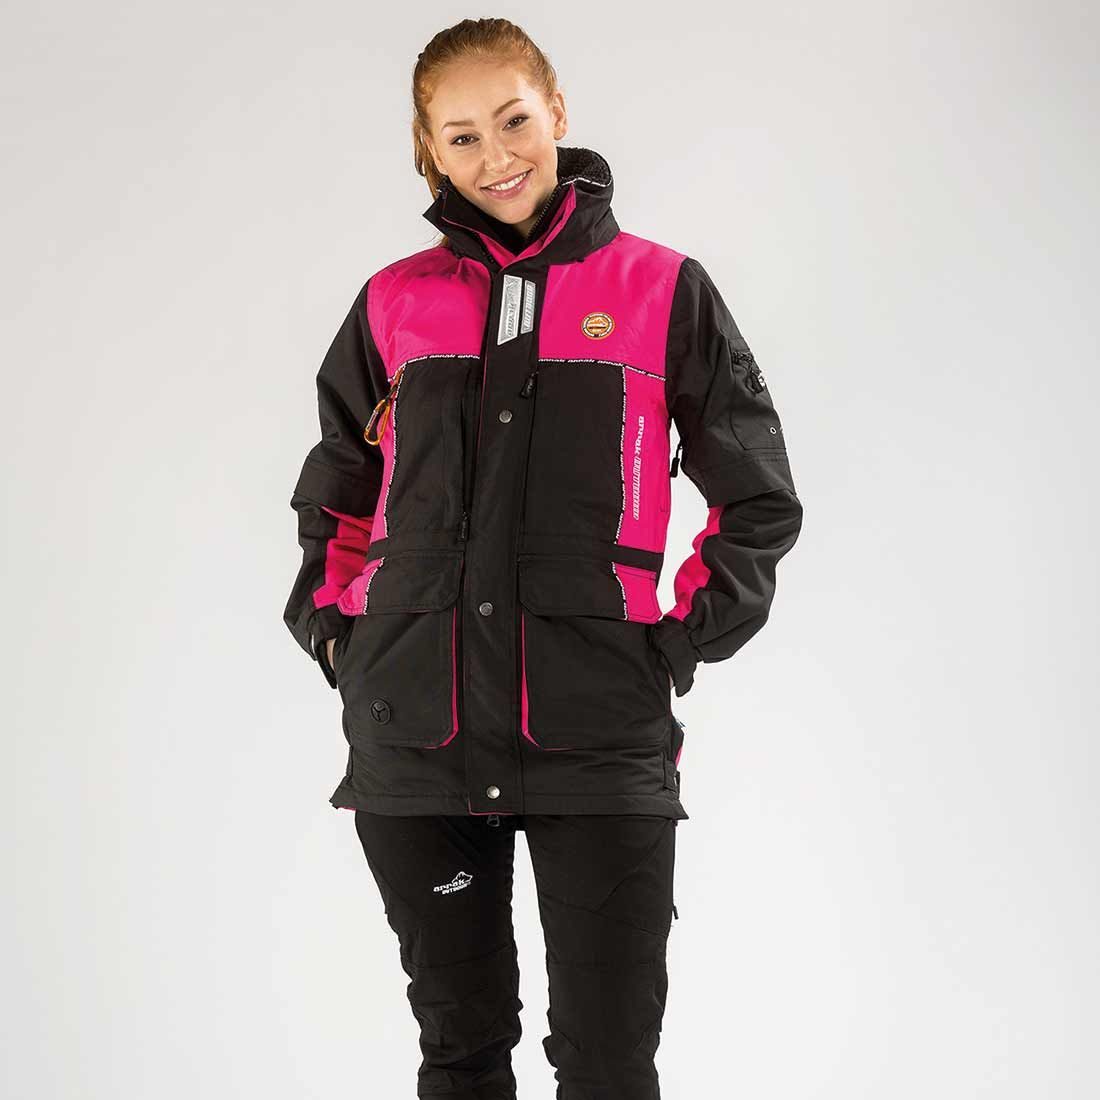 Arrak New Original Jacket Pink/Black XXS